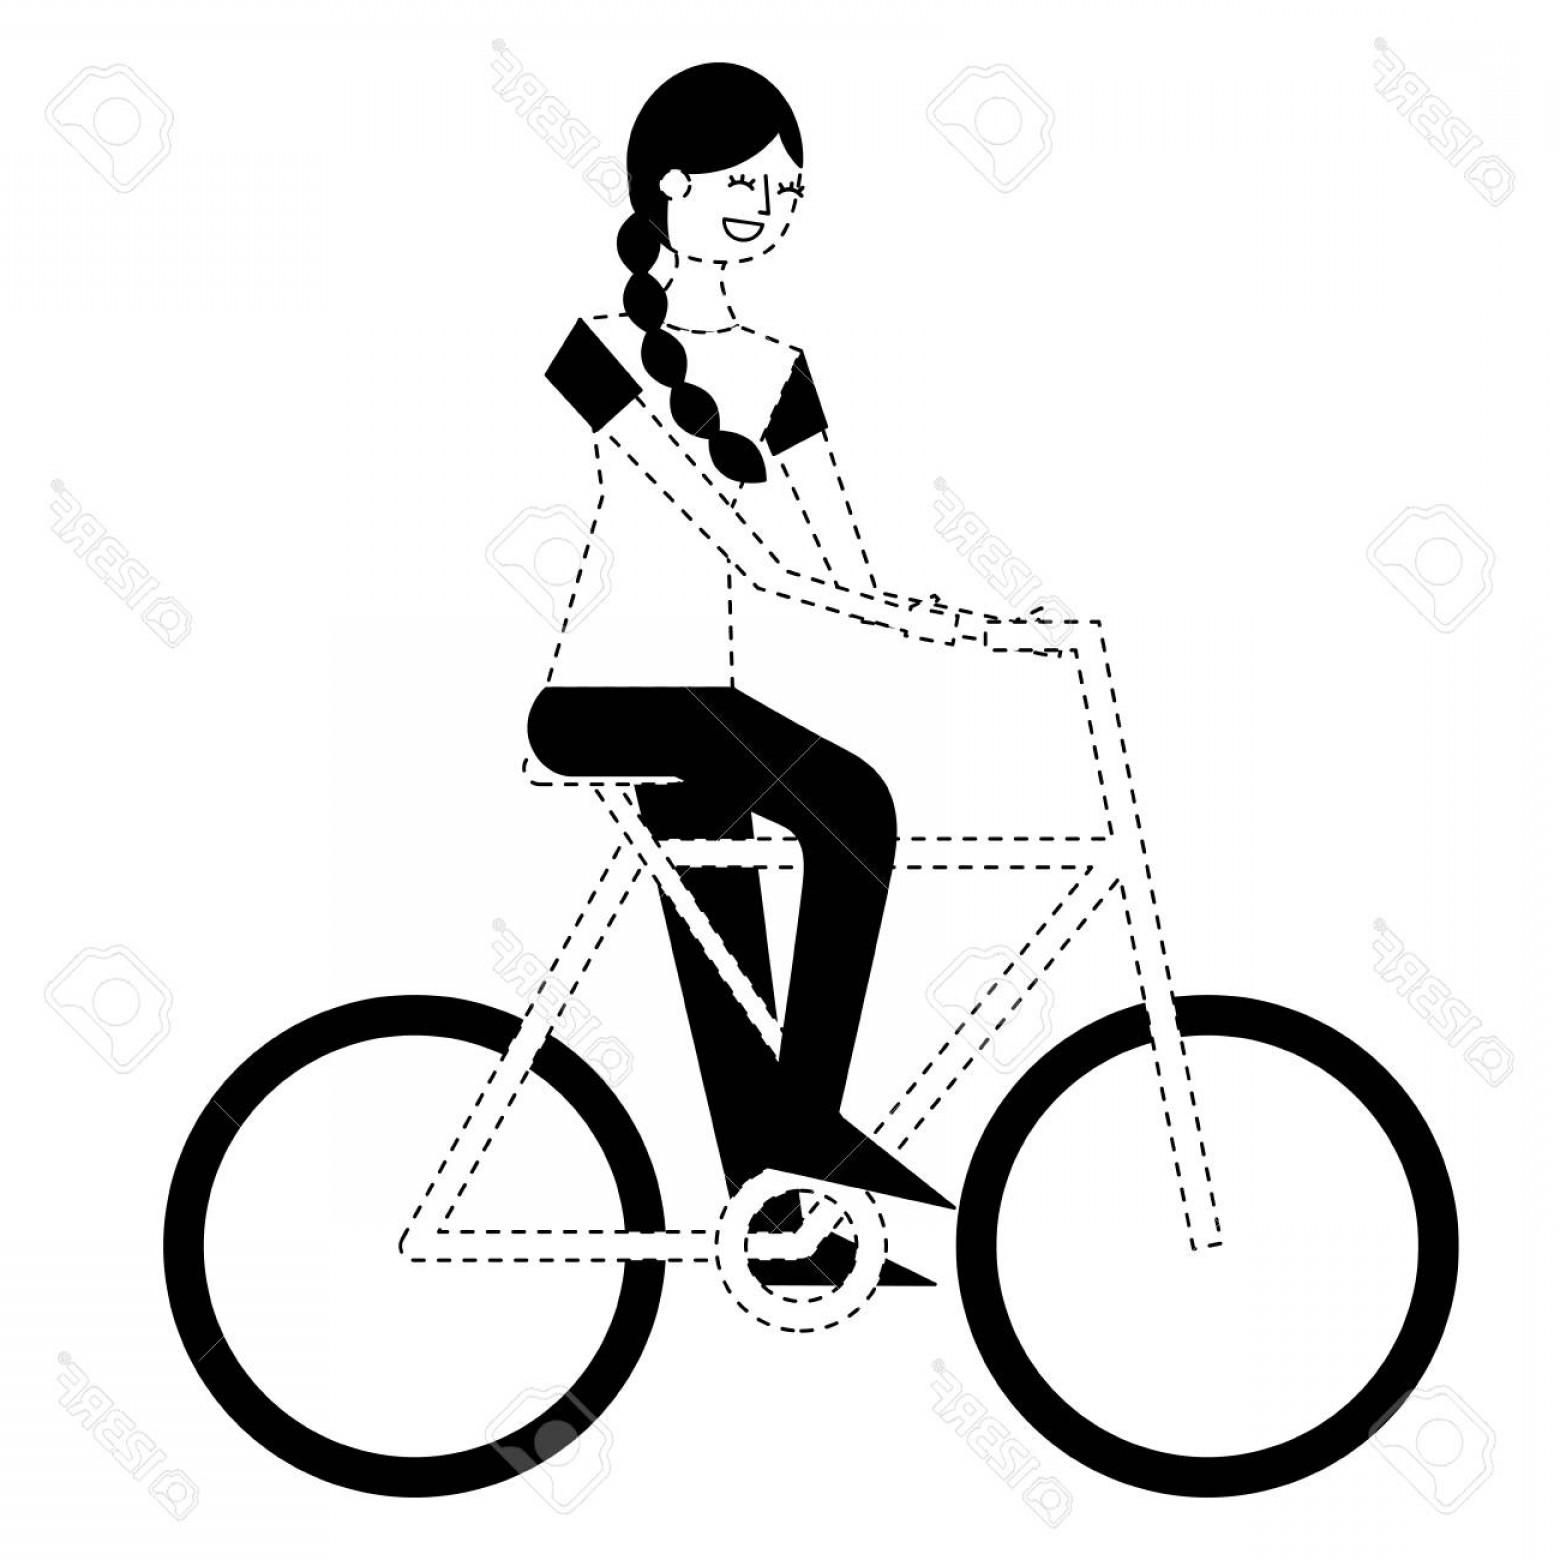 Beautiful Bicycle Vector: Photostock Vector Beautiful Young Happy Woman Riding In Bicycle Vector Illustration Monochrome Dotted Line Image